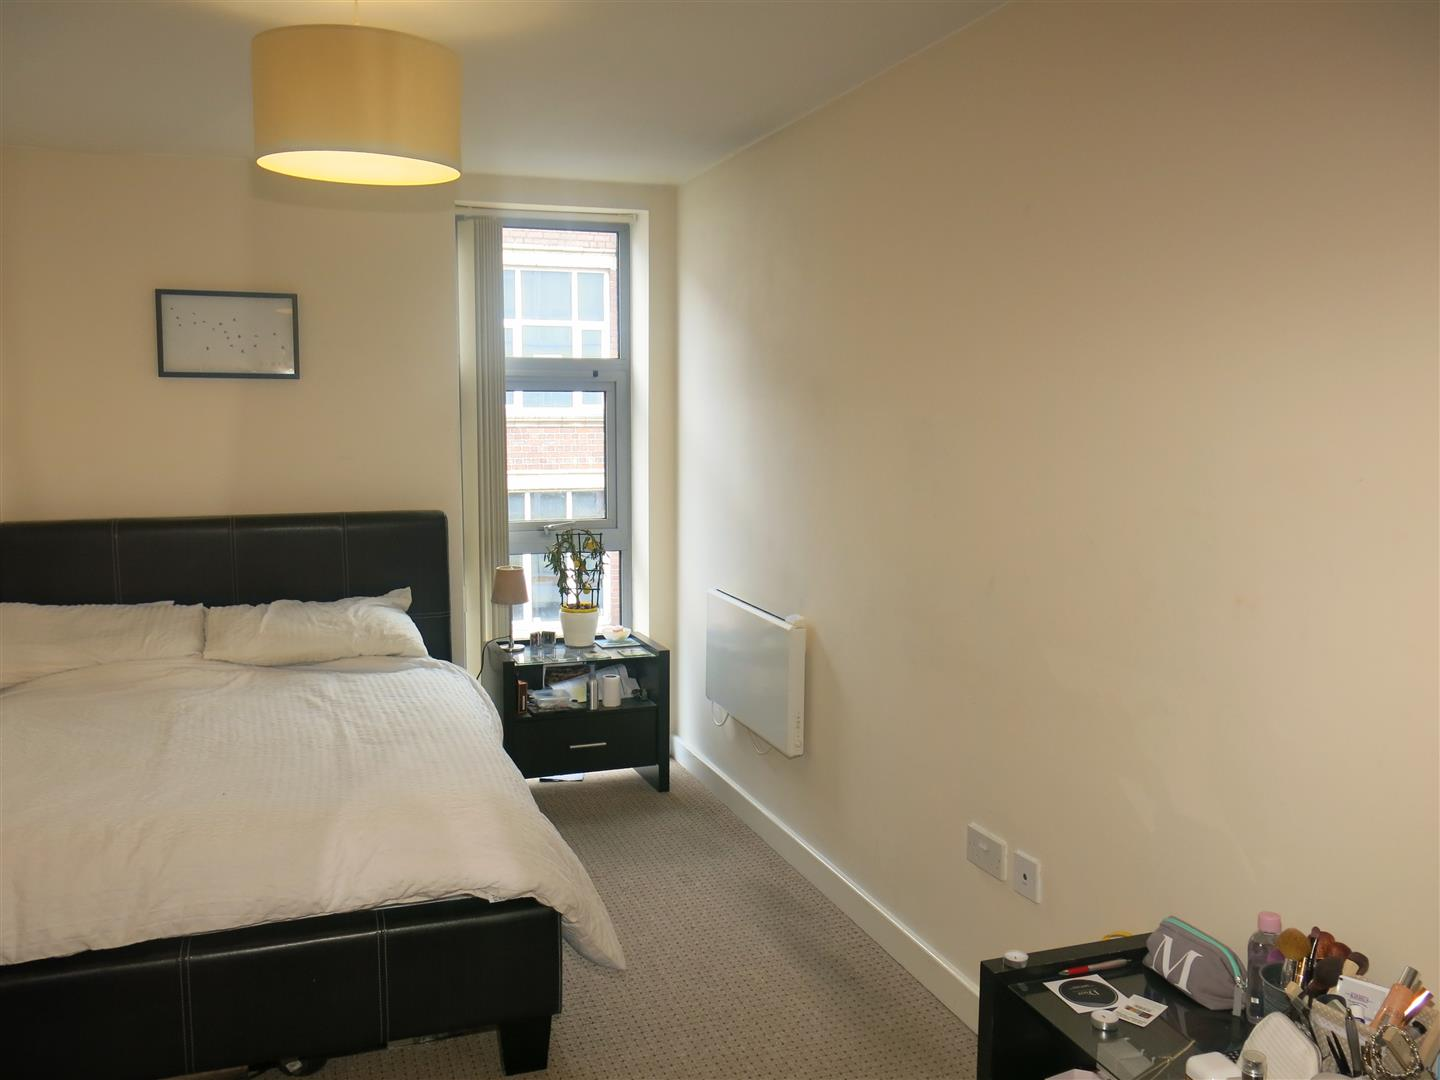 1 bedroom apartment for sale in birmingham for 1 bedroom apartments birmingham